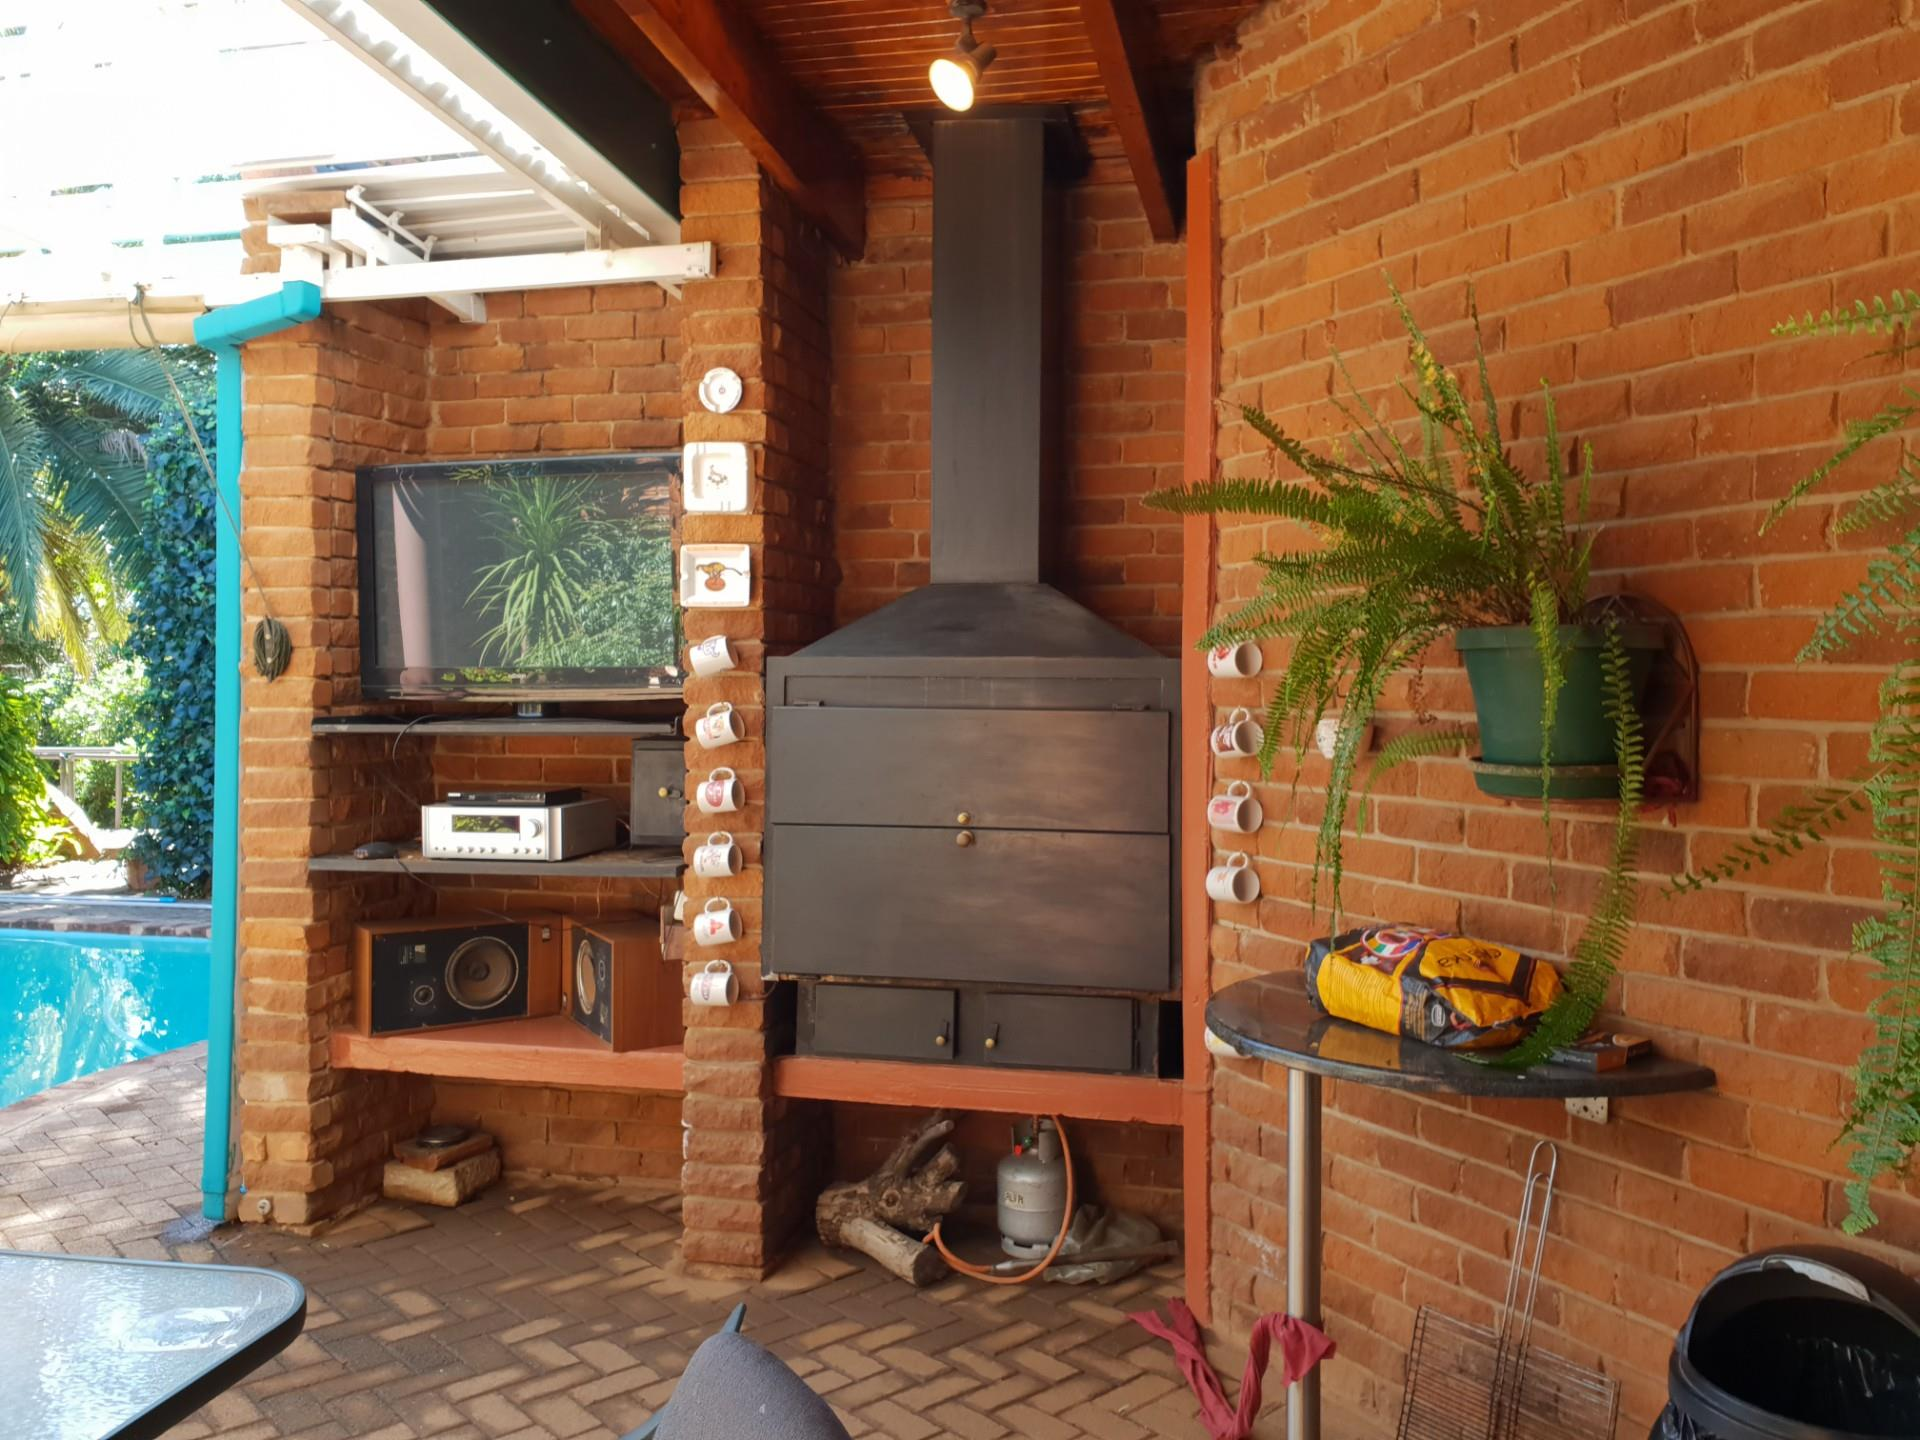 4 Bedroom House For Sale in Heuwelsig